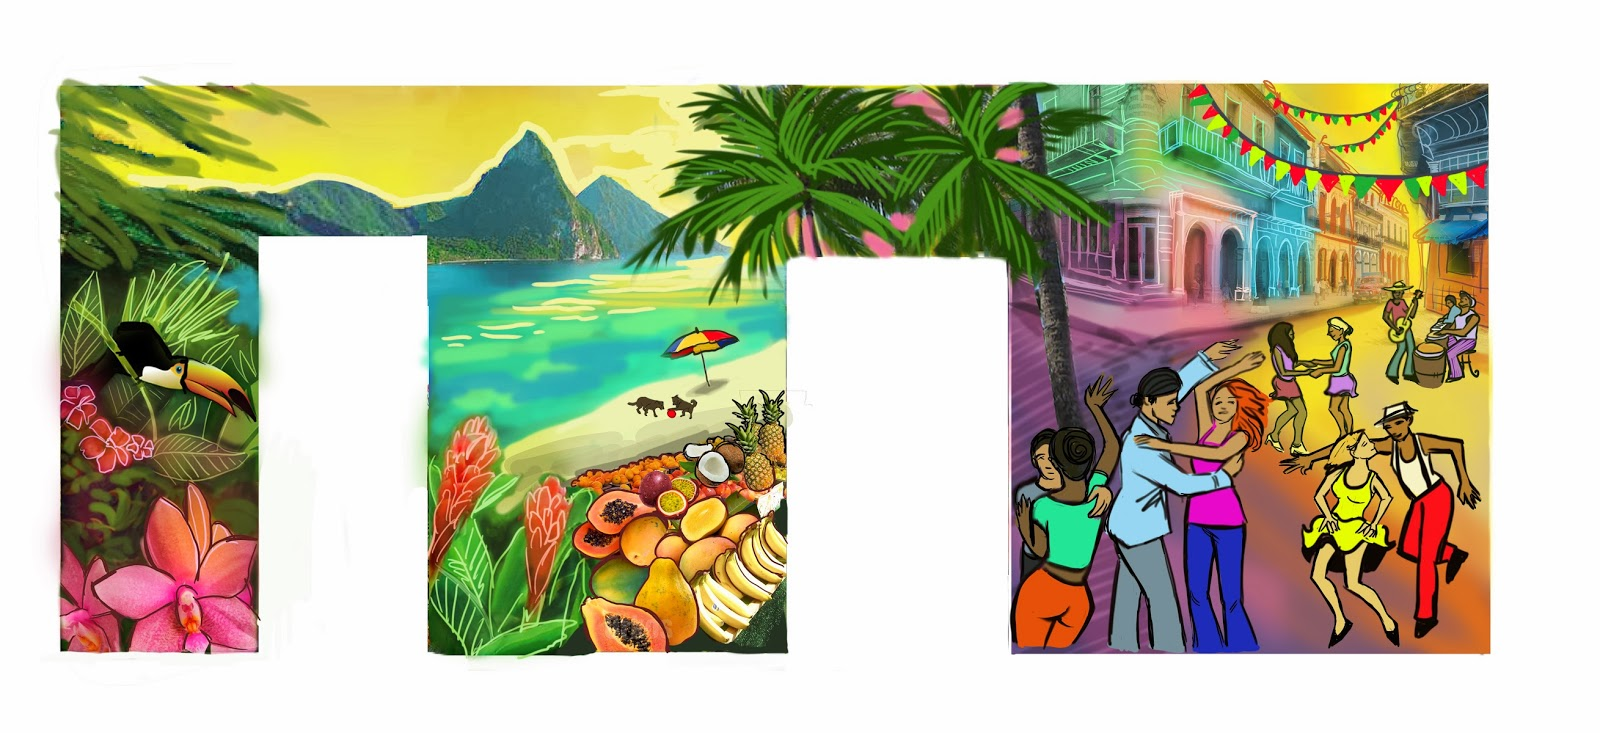 latin dance mural, cuba salsa mural, dance party mural, latin beach mural